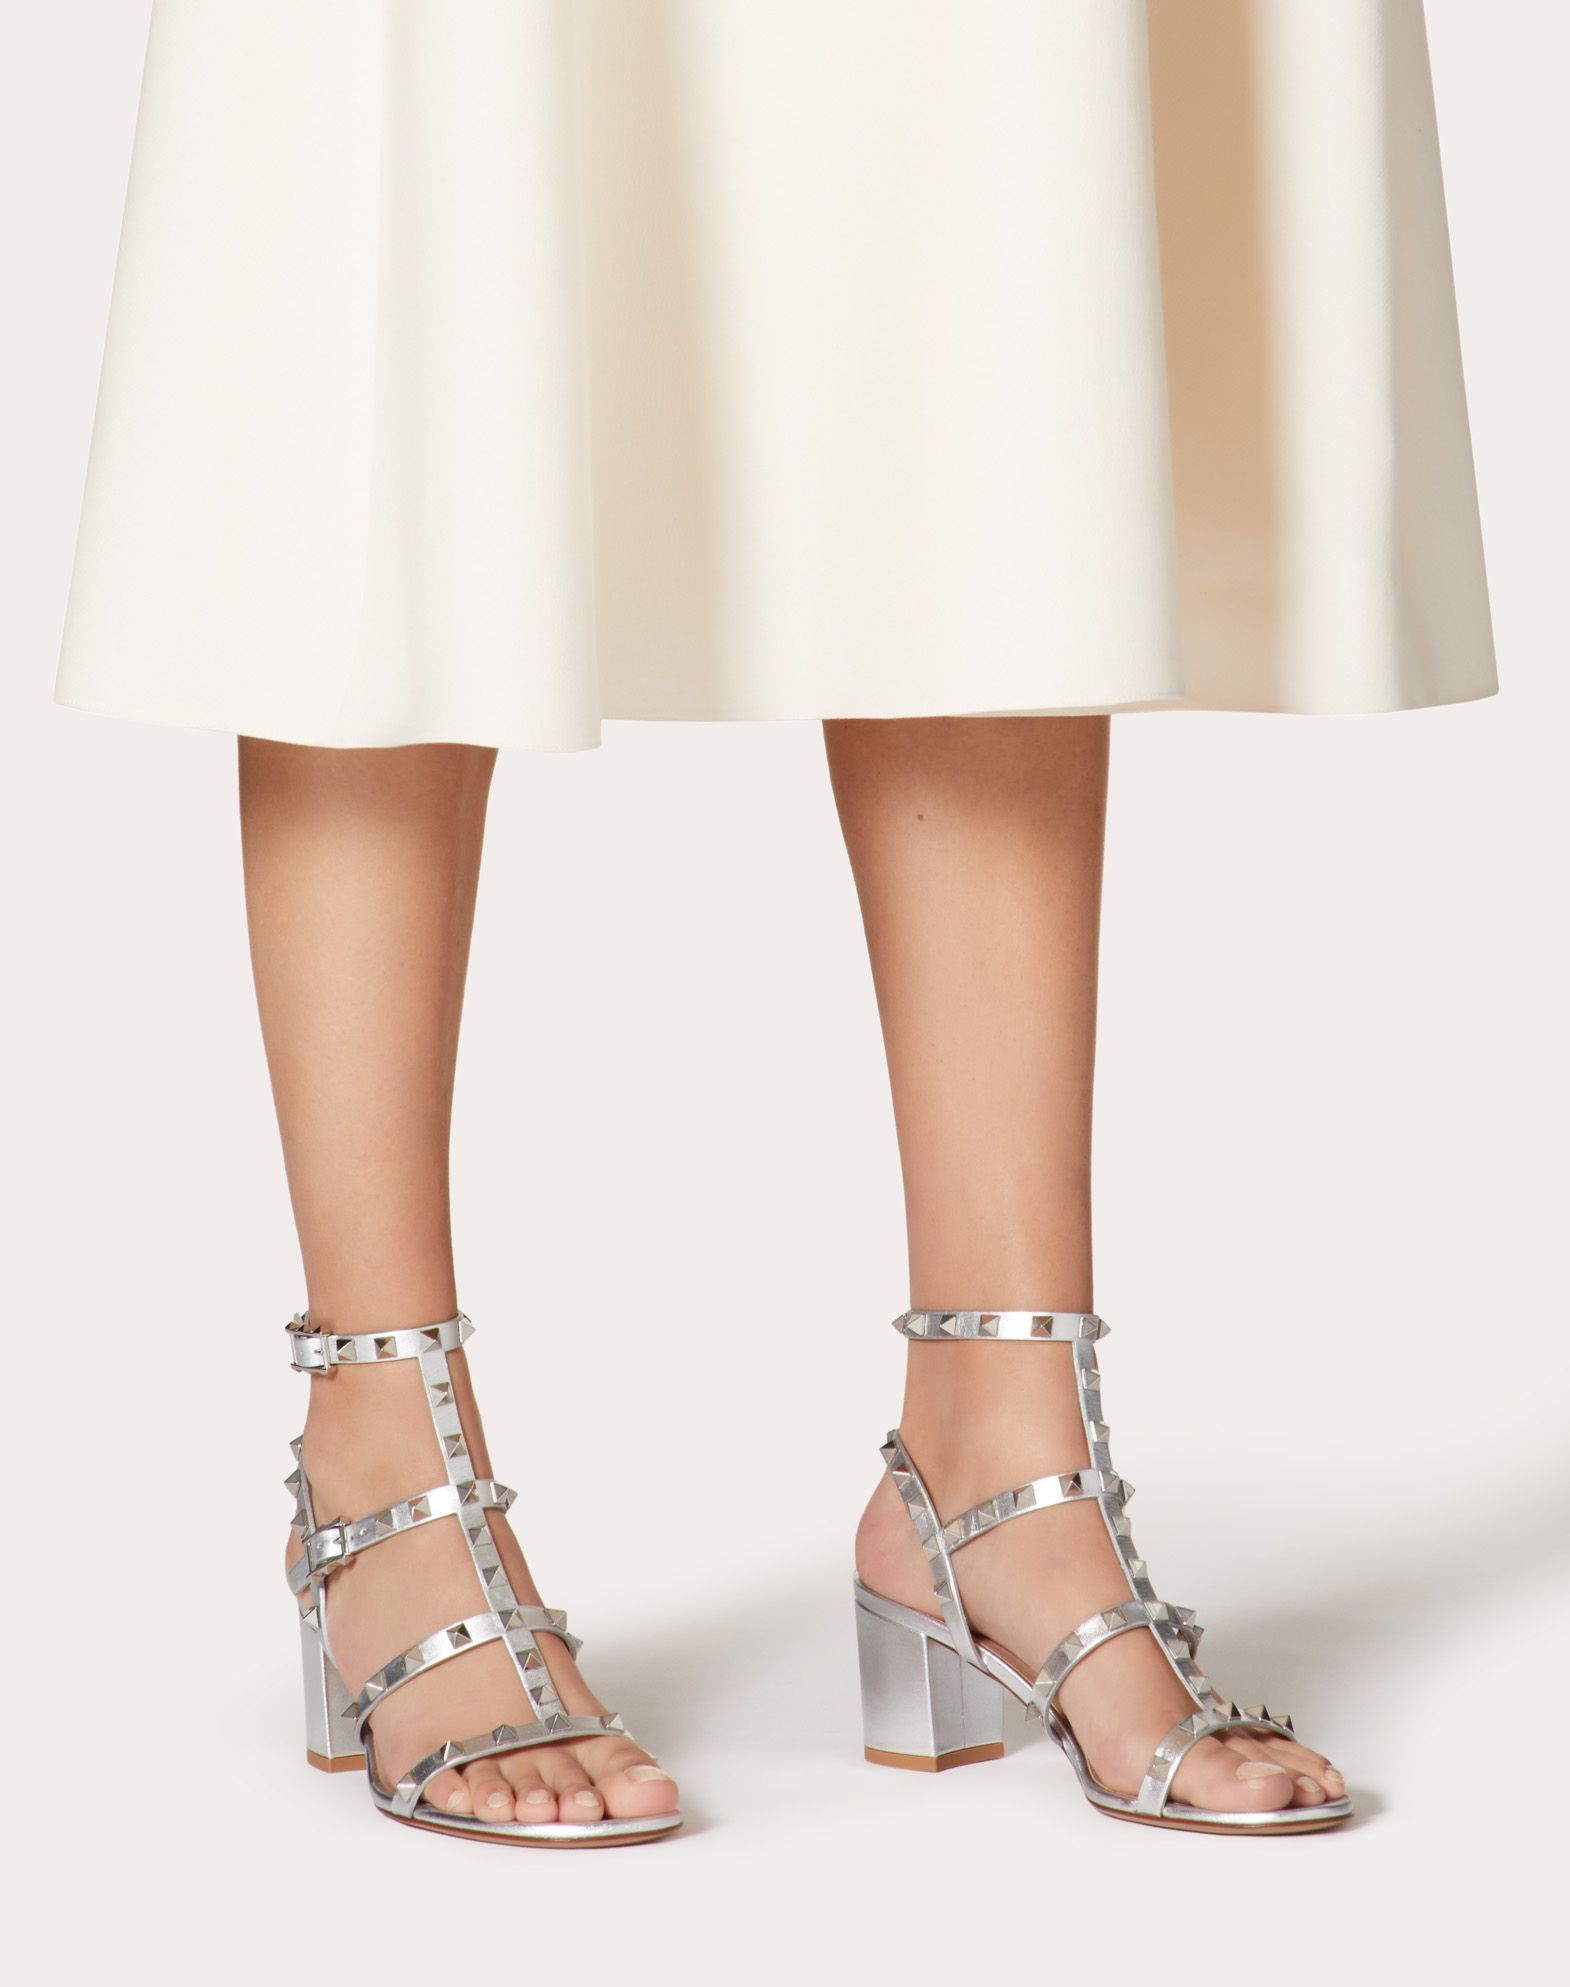 Cheap Price Low Shipping Fee Valentino Garavani The Rockstud Metallic Textured-leather Sandals - Silver Valentino Discount Free Shipping Visit Outlet Perfect Store Cheap Price y2Xnu1